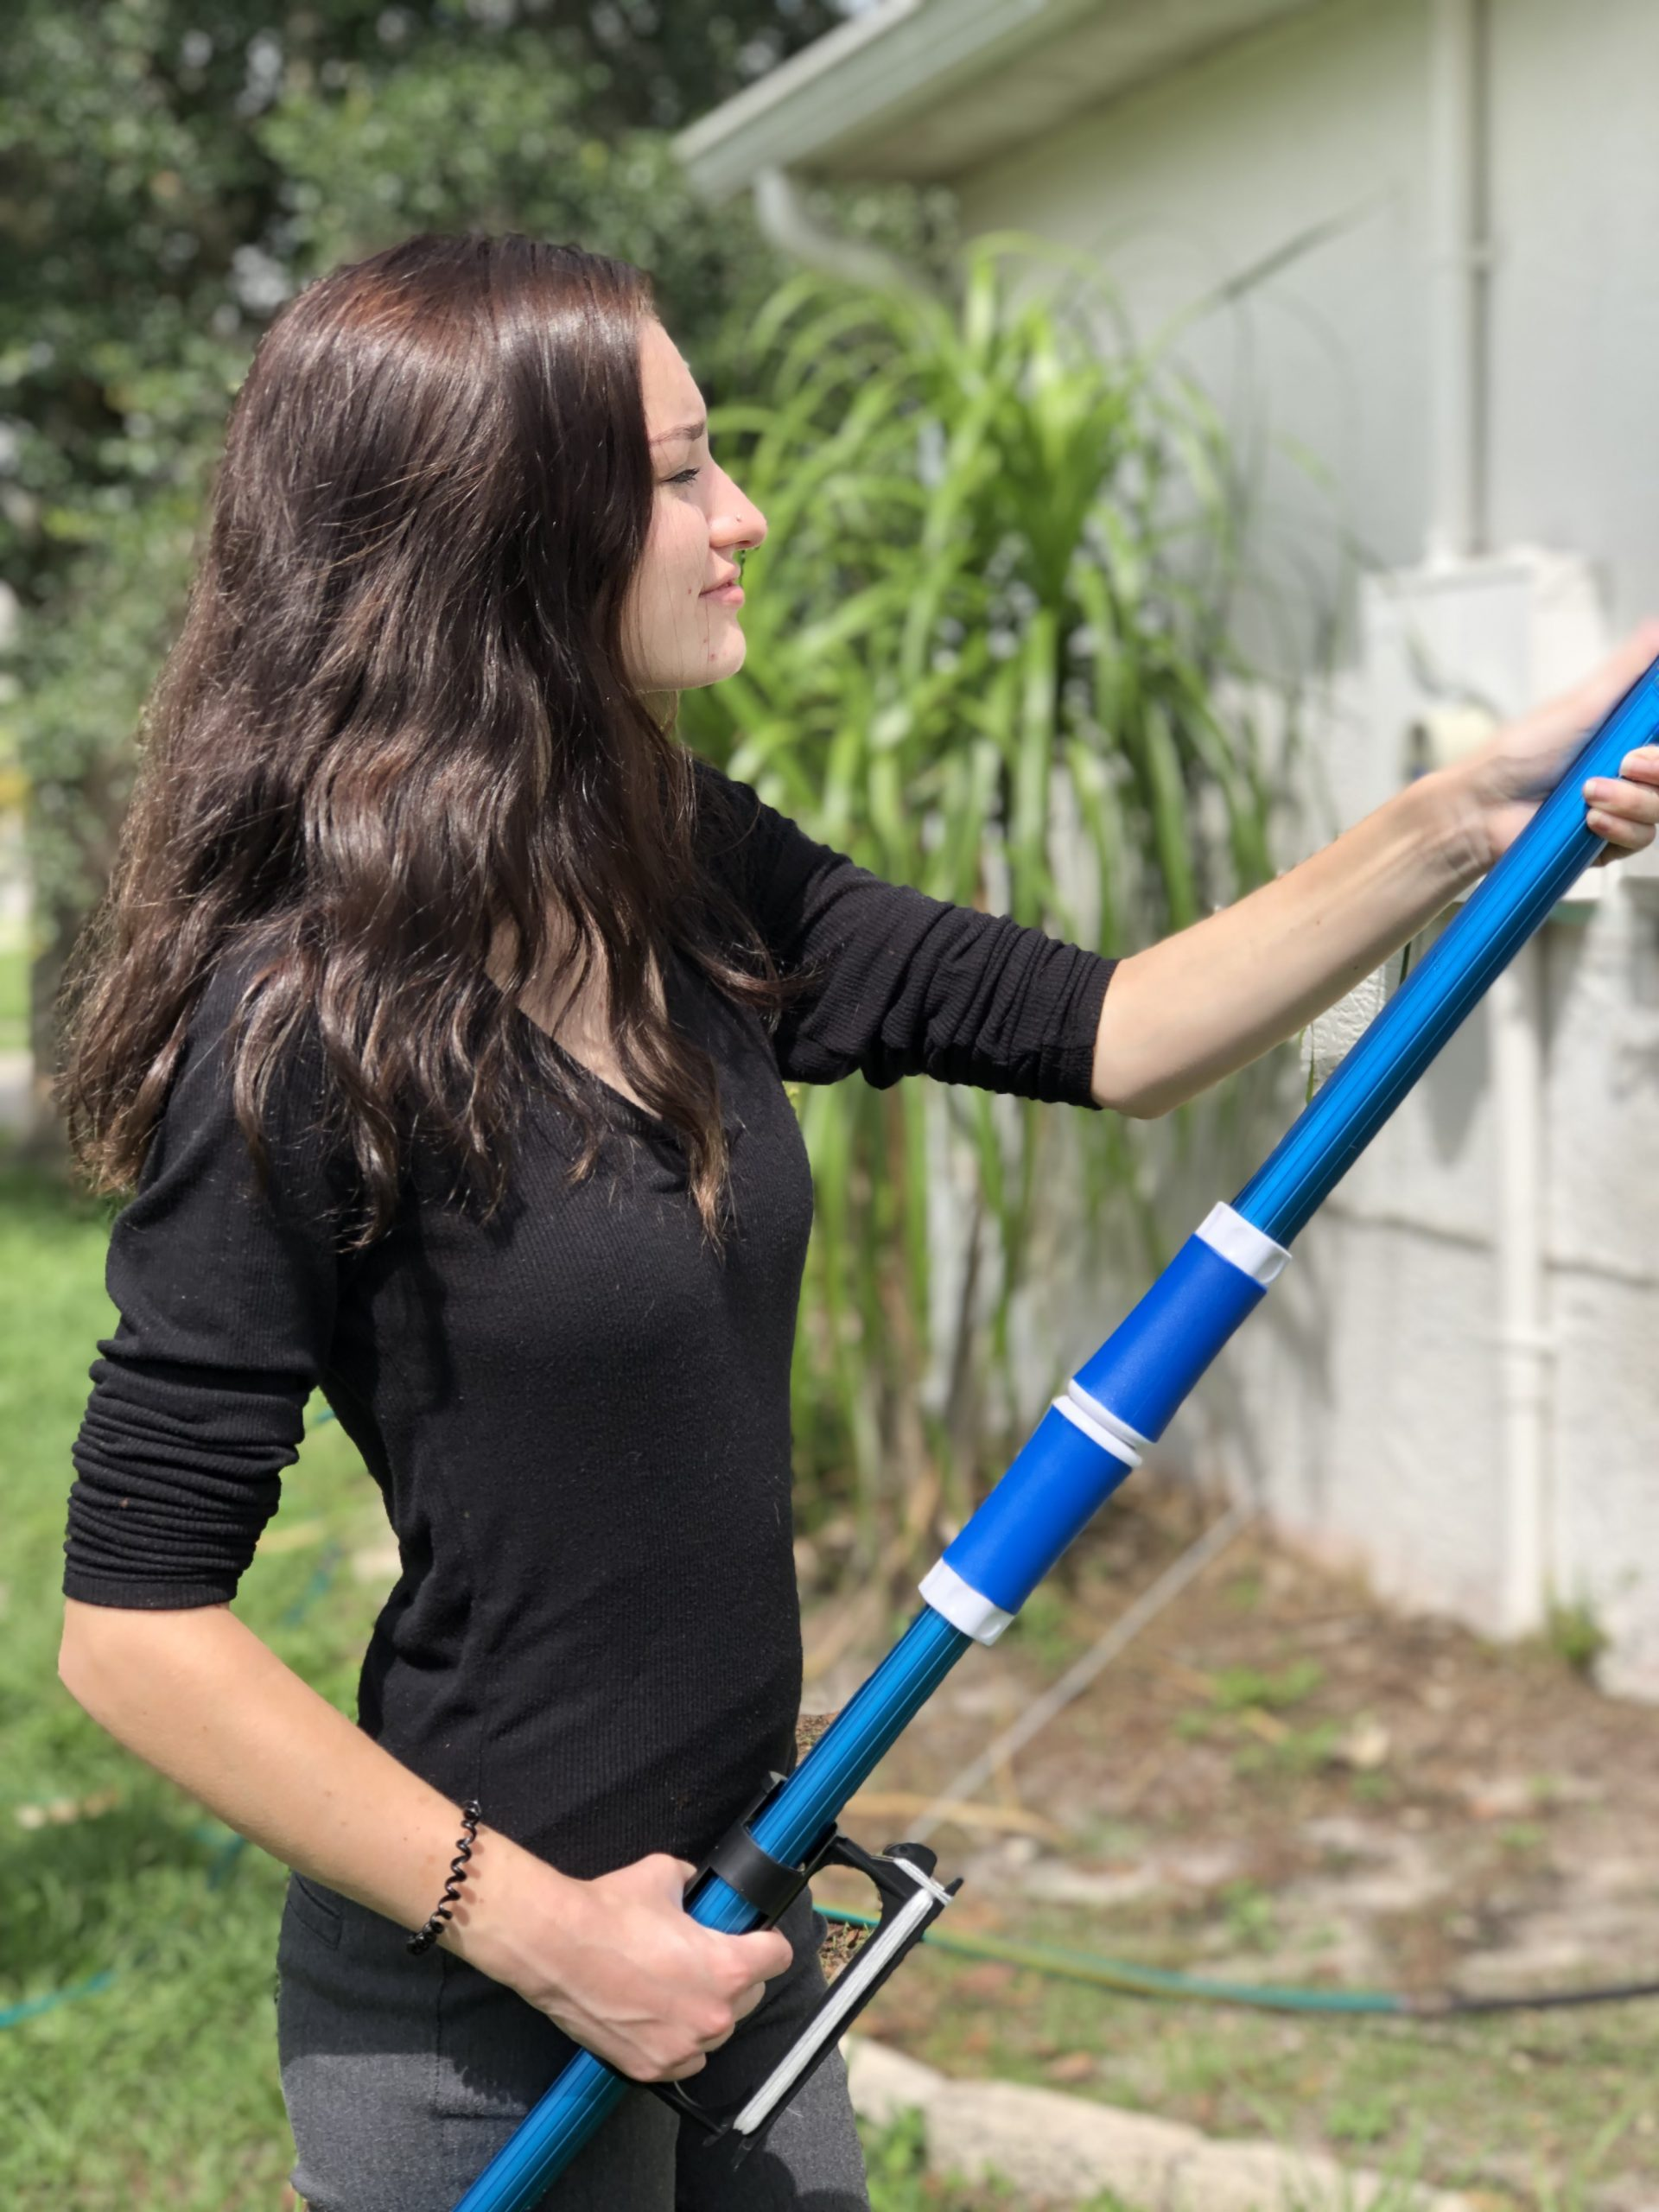 Young lady cleaning gutters using Gutter Fingers gutter cleaning tool